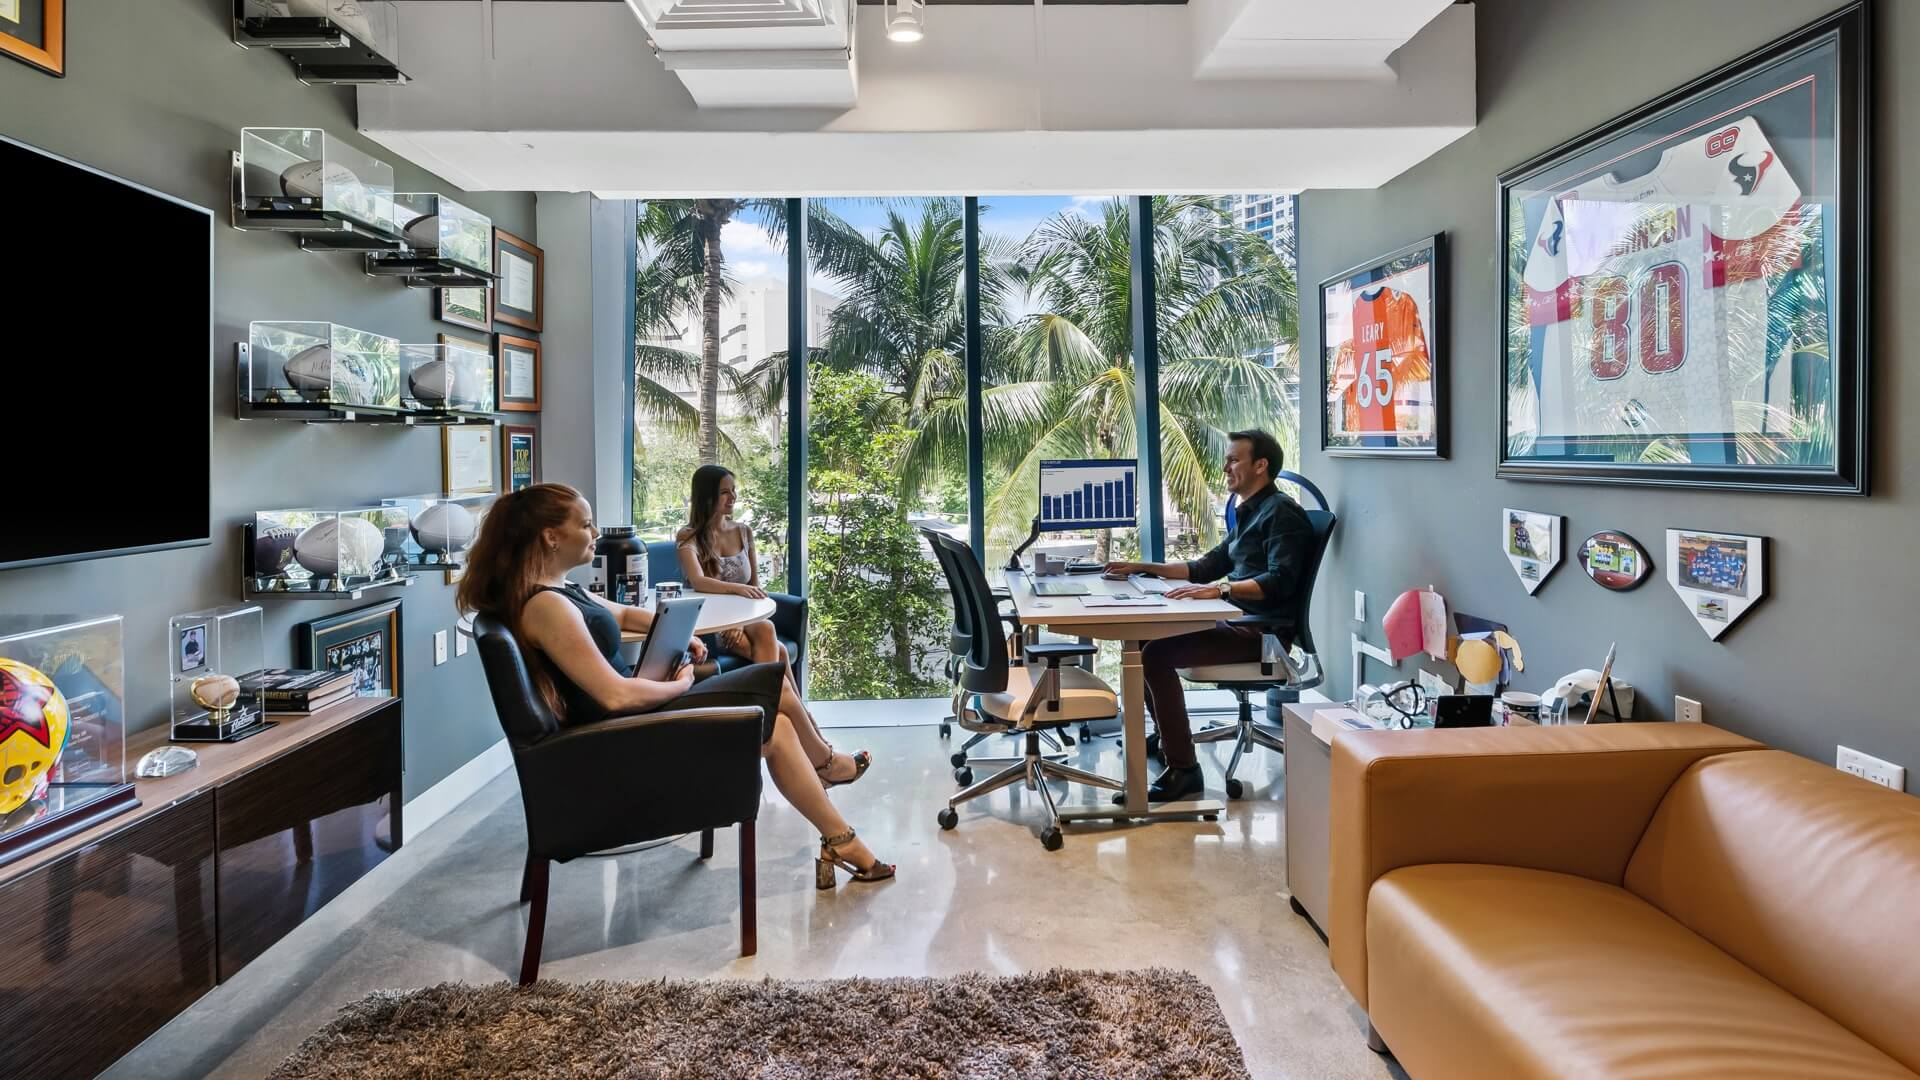 Coworking Shared Office Space In Fort Lauderdale